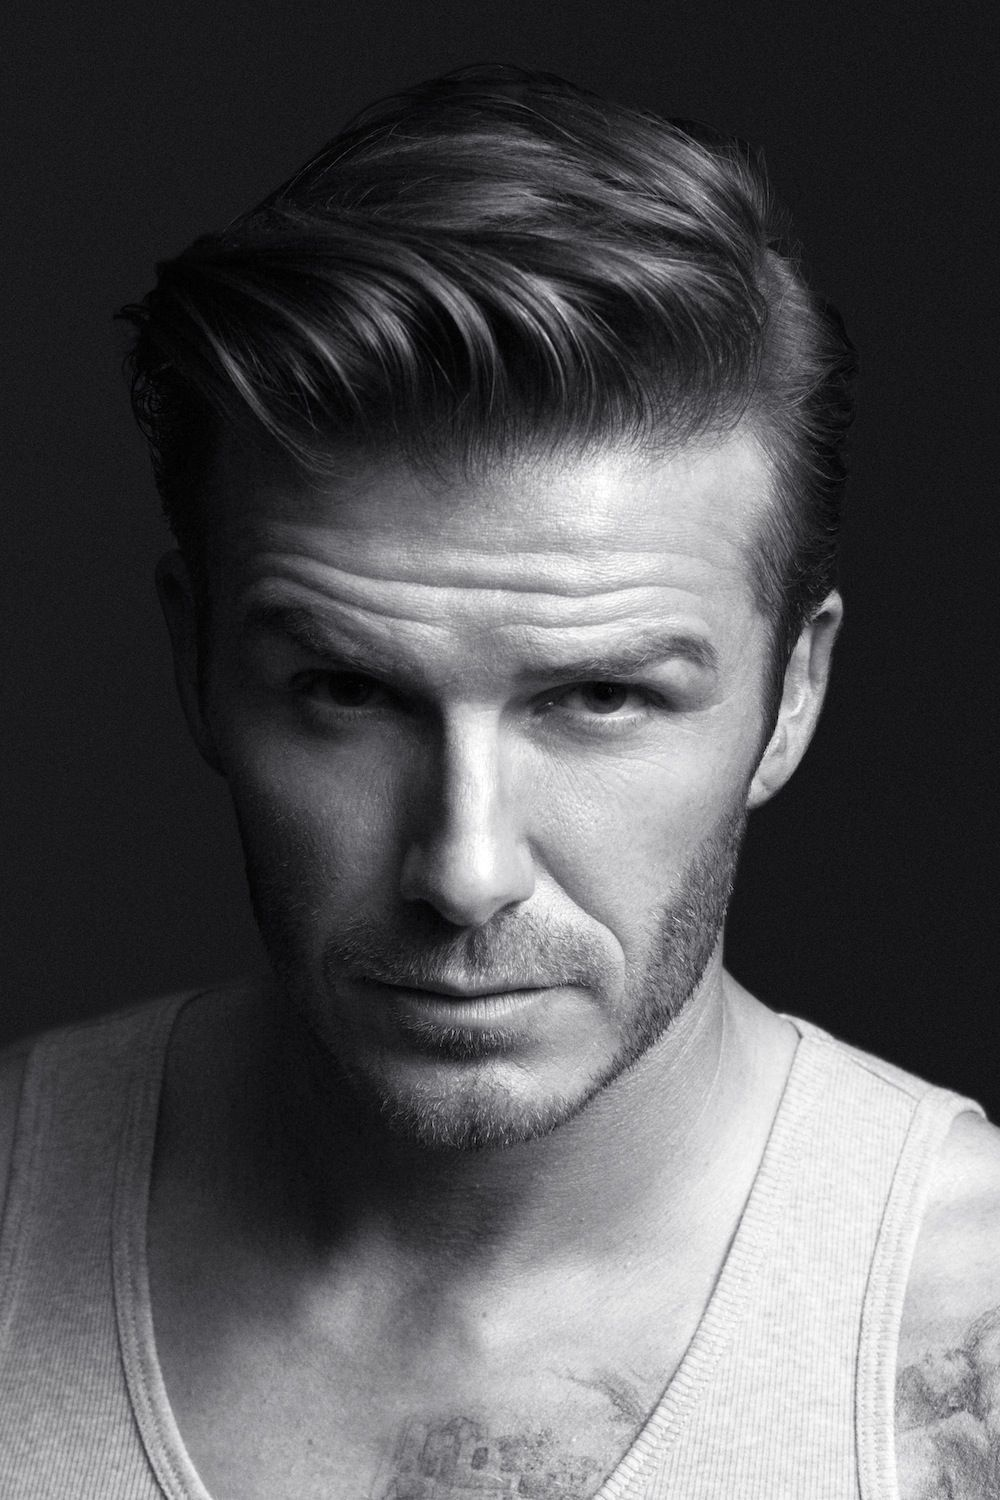 Pin by chris diaz on hairstyles in david beckham hair styles